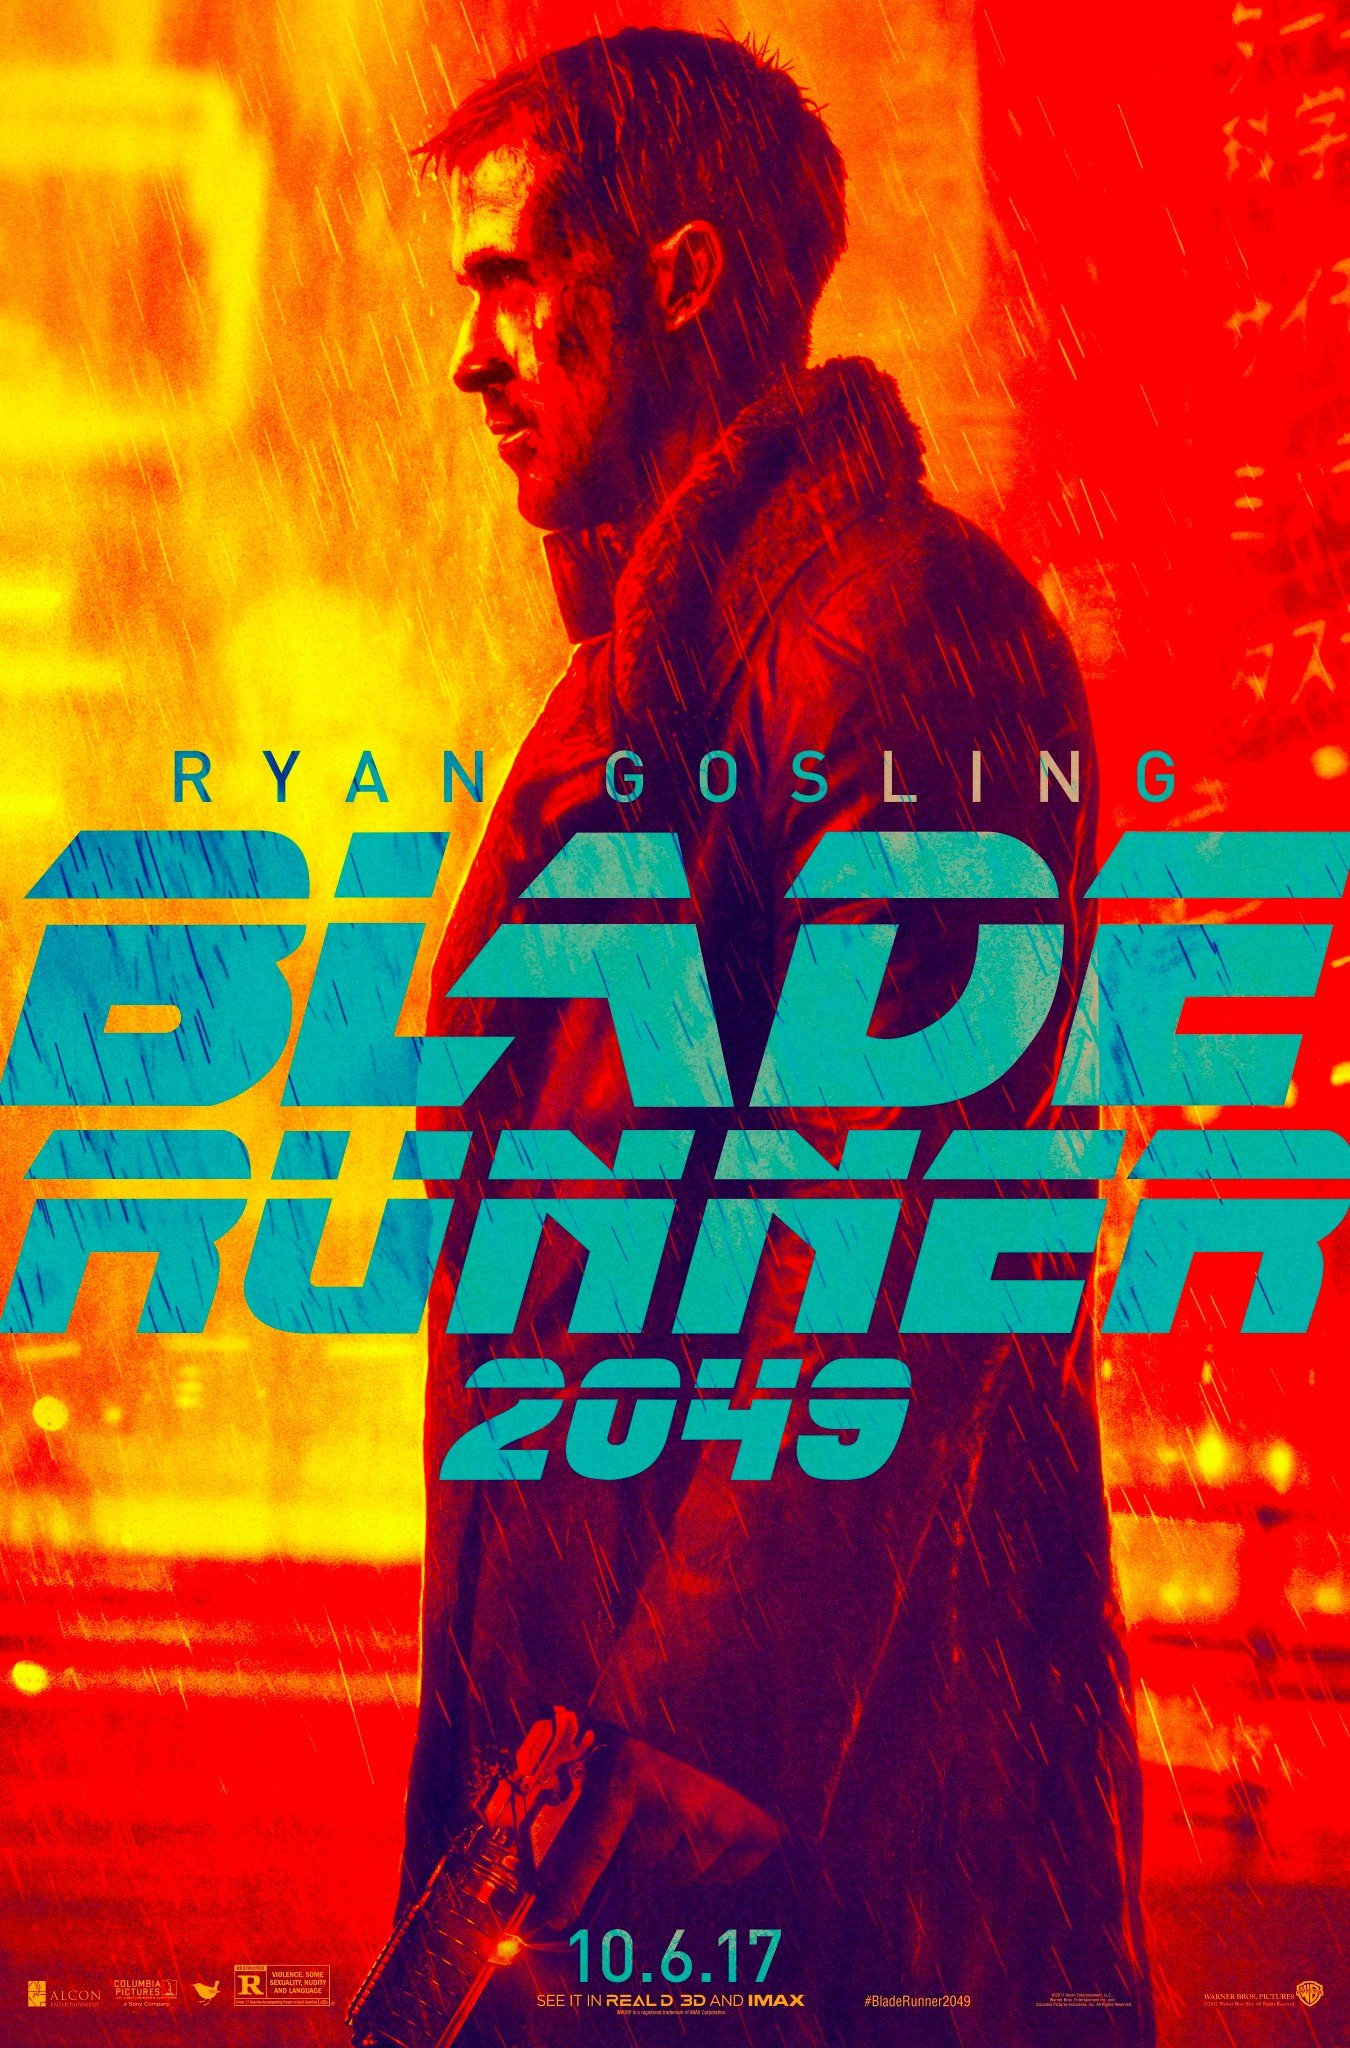 Blade Runner 2049 Hi-Res Stills Show Off The Year's Most Beautiful Film